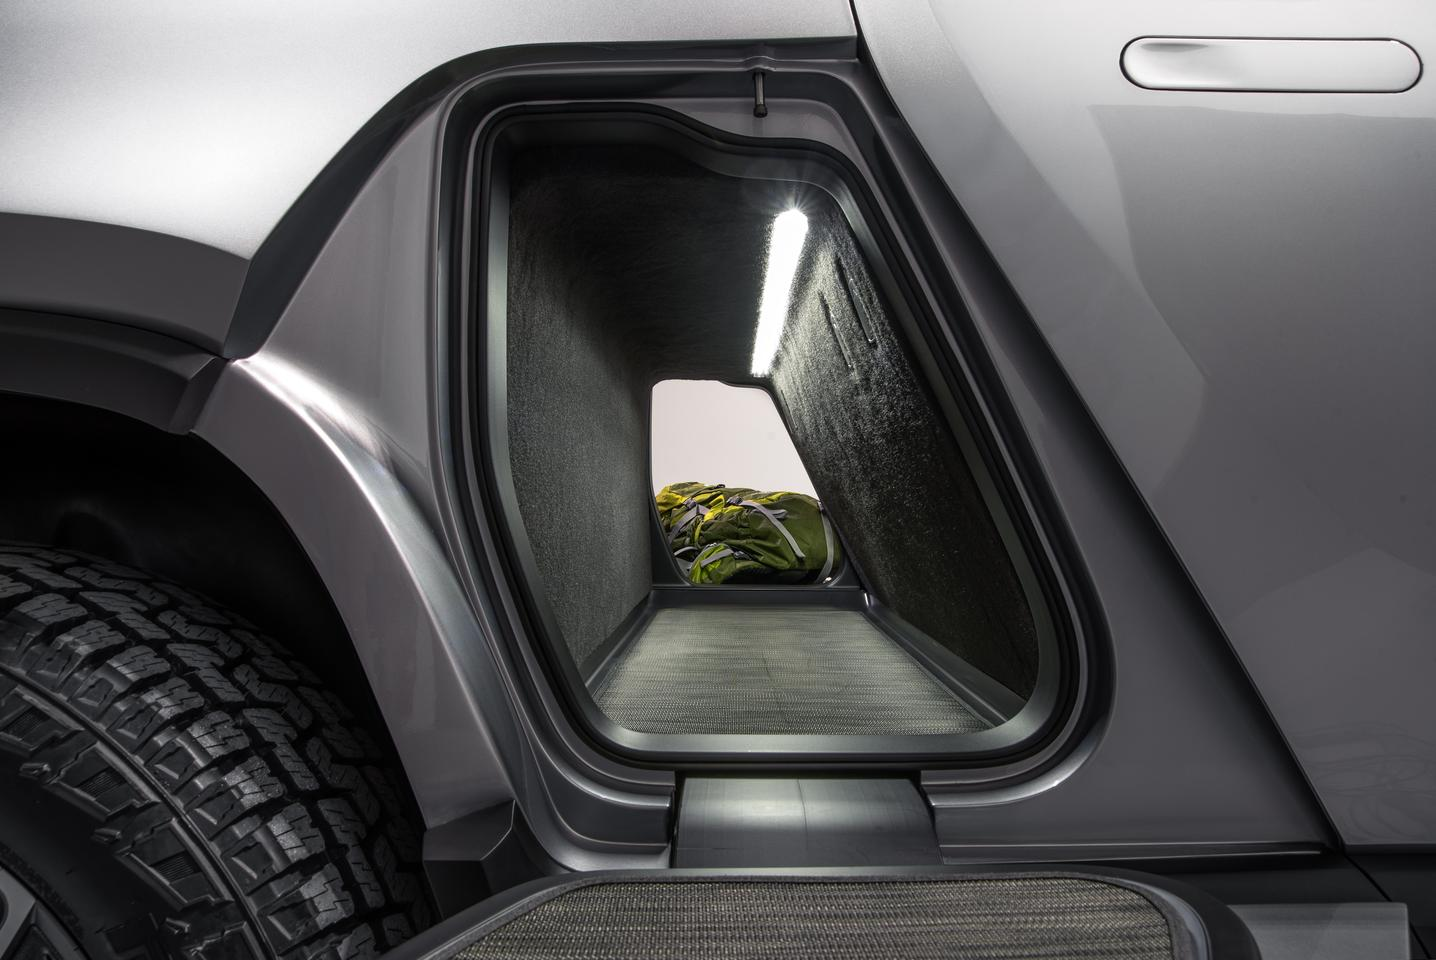 Rivian gives the R1T a storage tunnel that passes cleanly from one side to the other